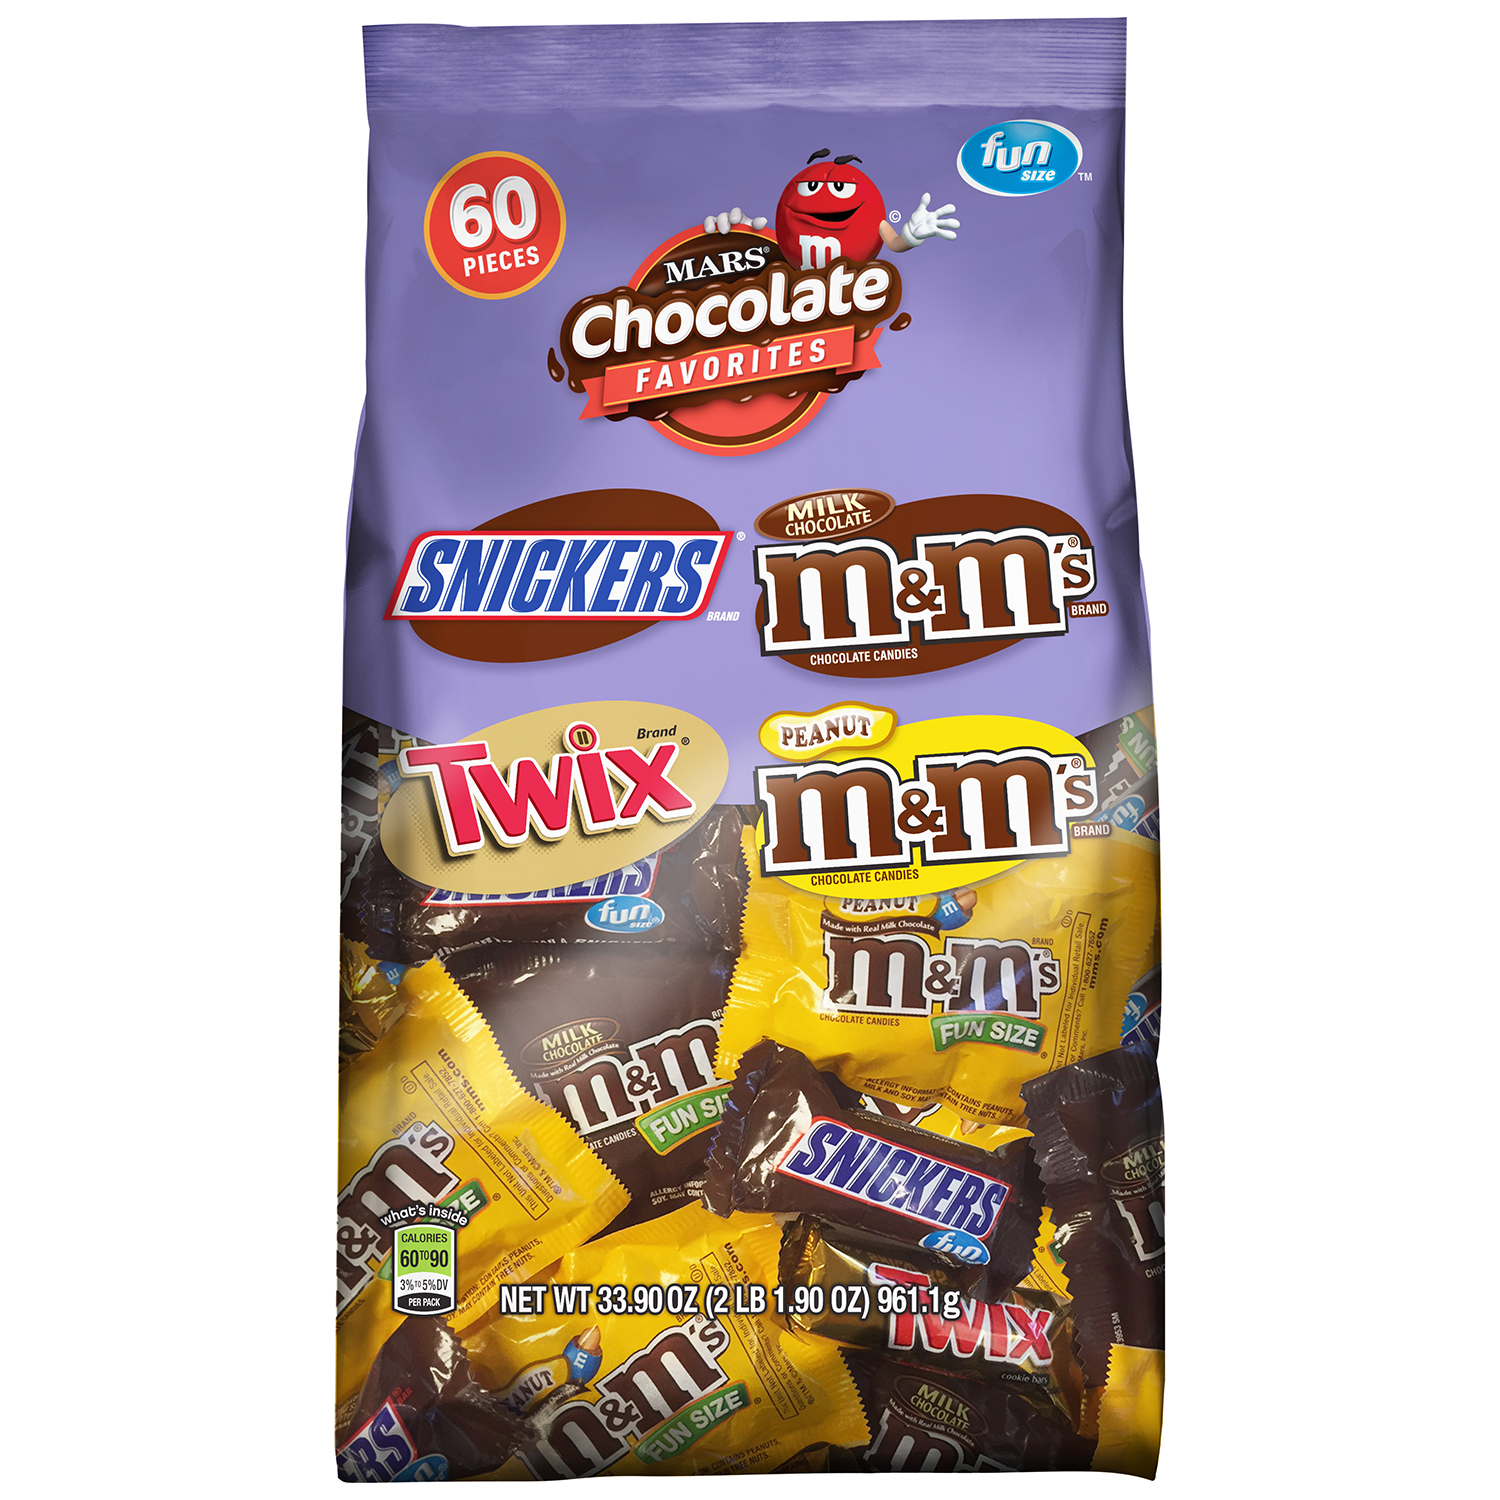 Mars Chocolate Favorites, 60 Piece, 33.90 oz by MARS, INC.